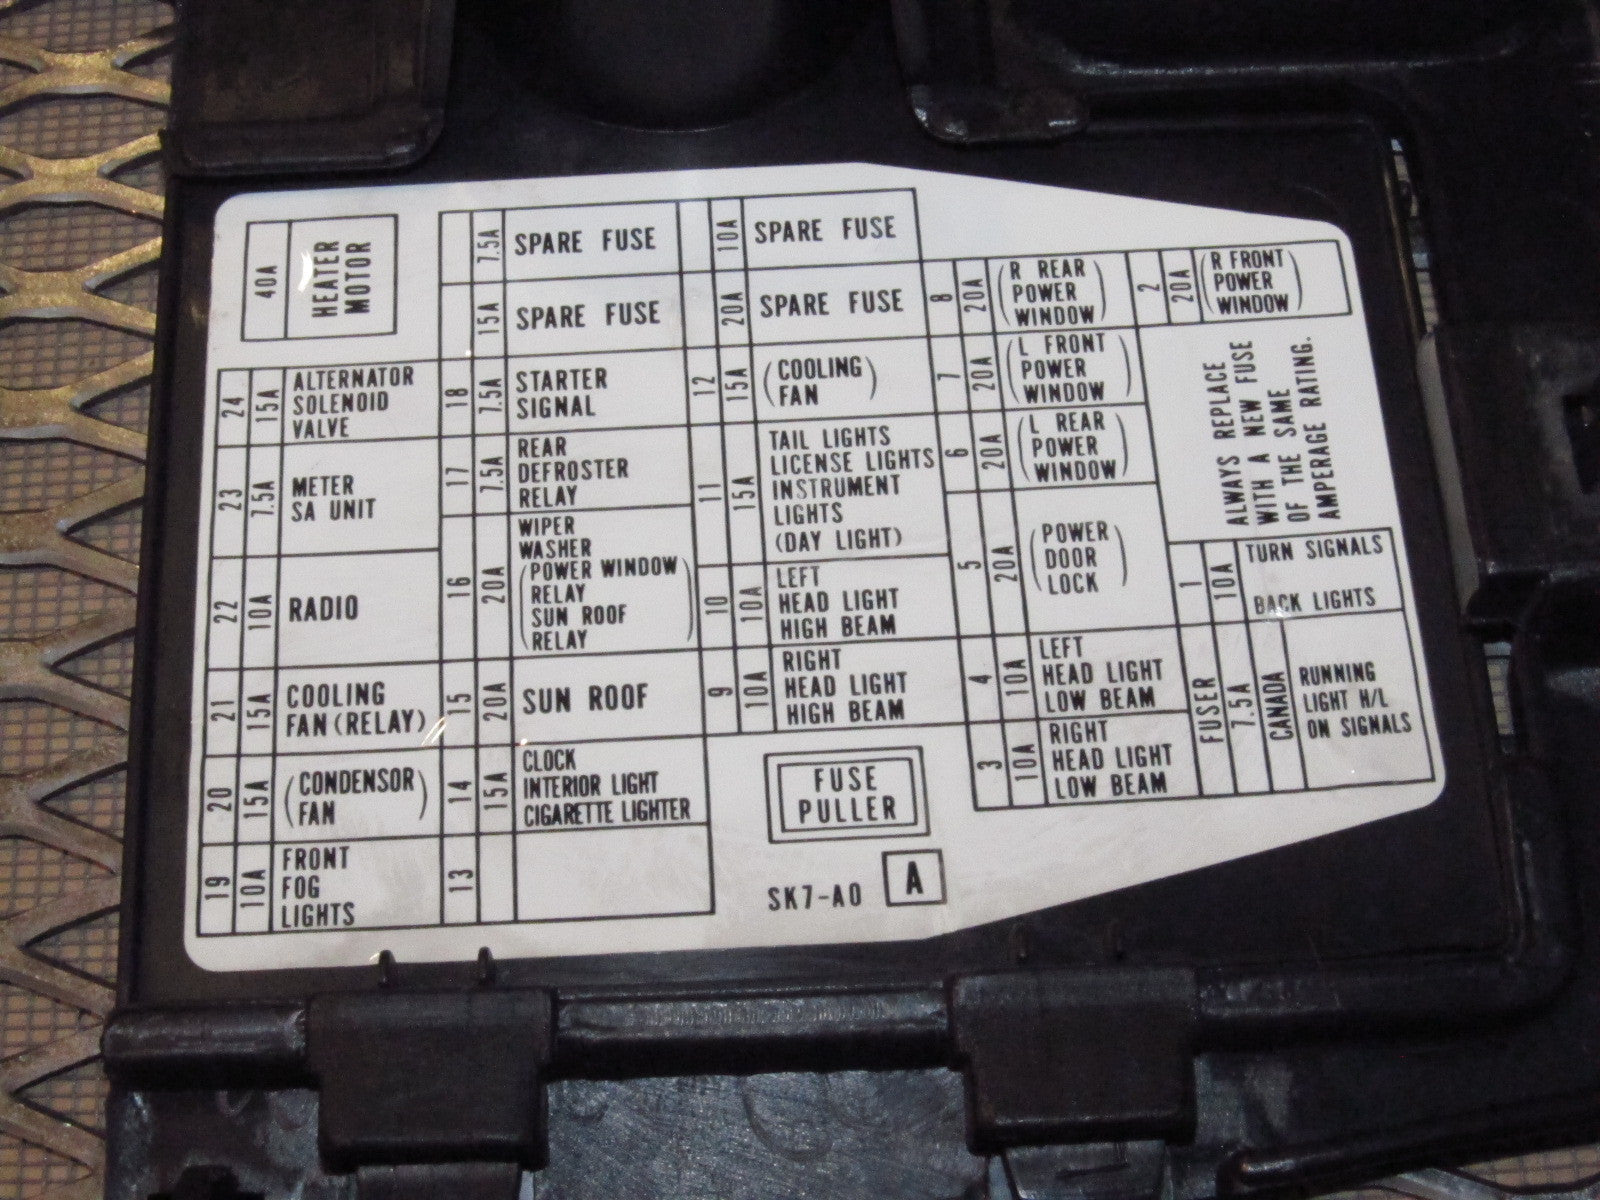 2001 acura integra fuse box diagram 90 91 92 93 acura integra oem kick panel cover set – autopartone.com